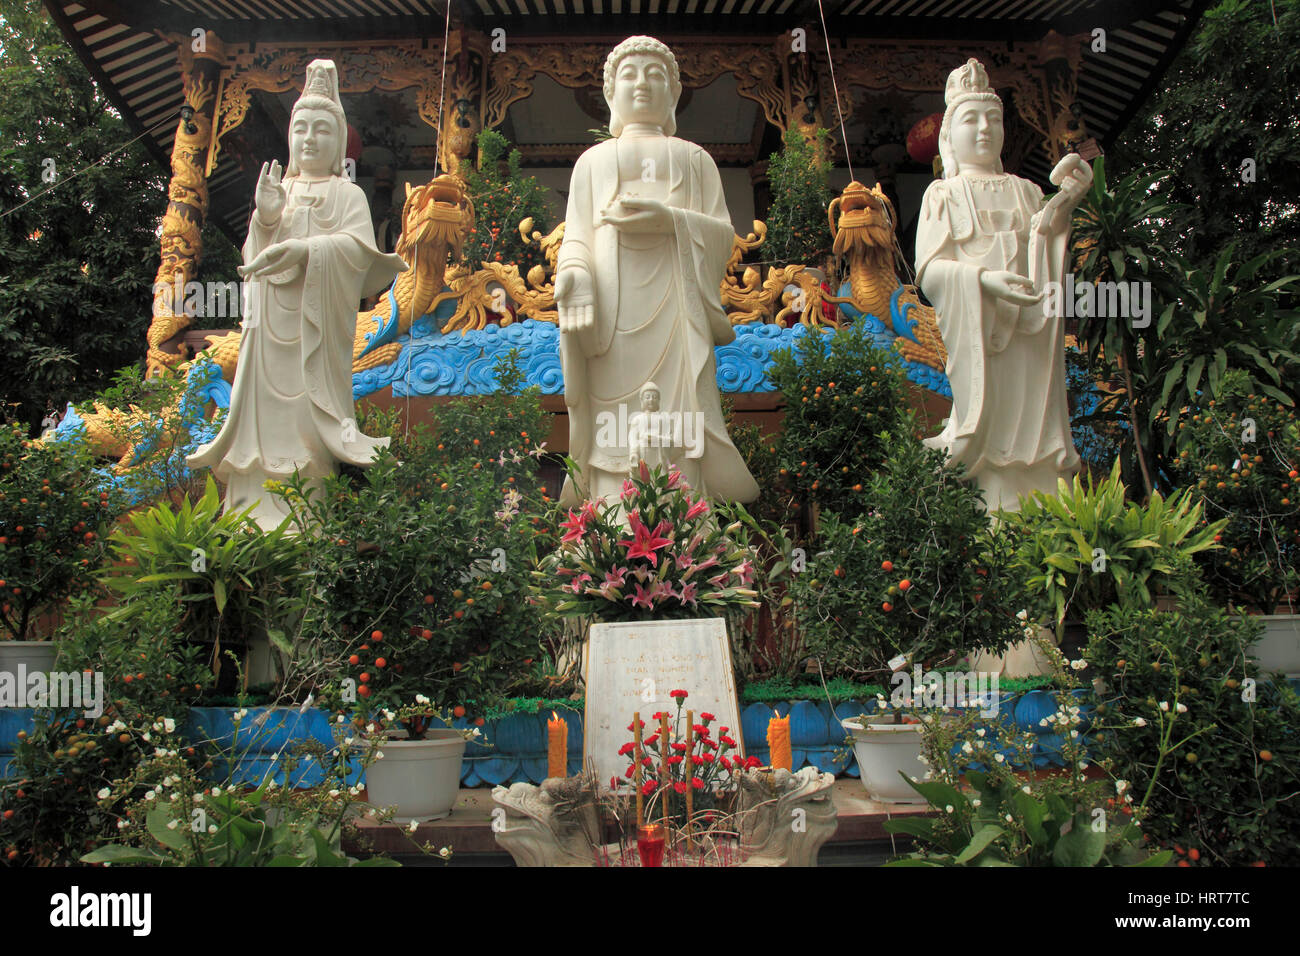 Laos, Vientiane, Chinese buddhist temple, statues, - Stock Image